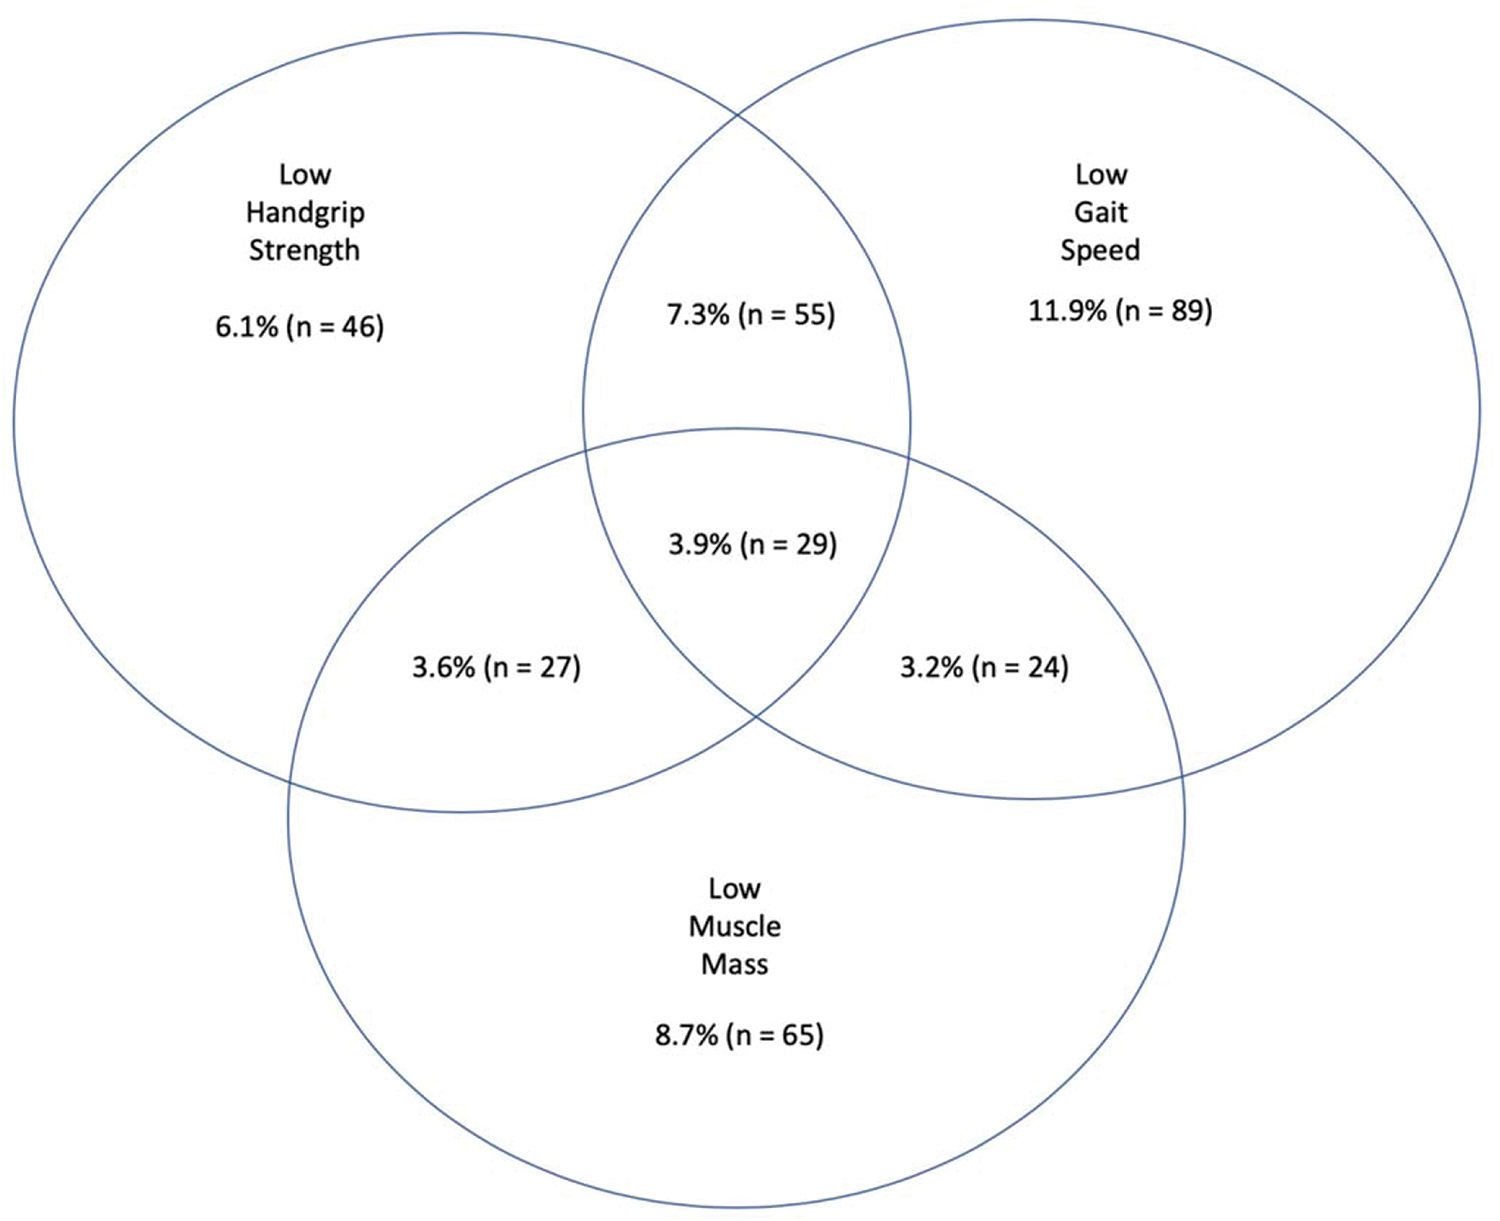 Venn diagram displaying the percentage of subjects [% (n)] who had low muscle mass and/or low handgrip strength and/or low gait speed amongst 745 individuals aged 65 years or older who are residents of the northern region of Rio de Janeiro, Brazil, 2010.